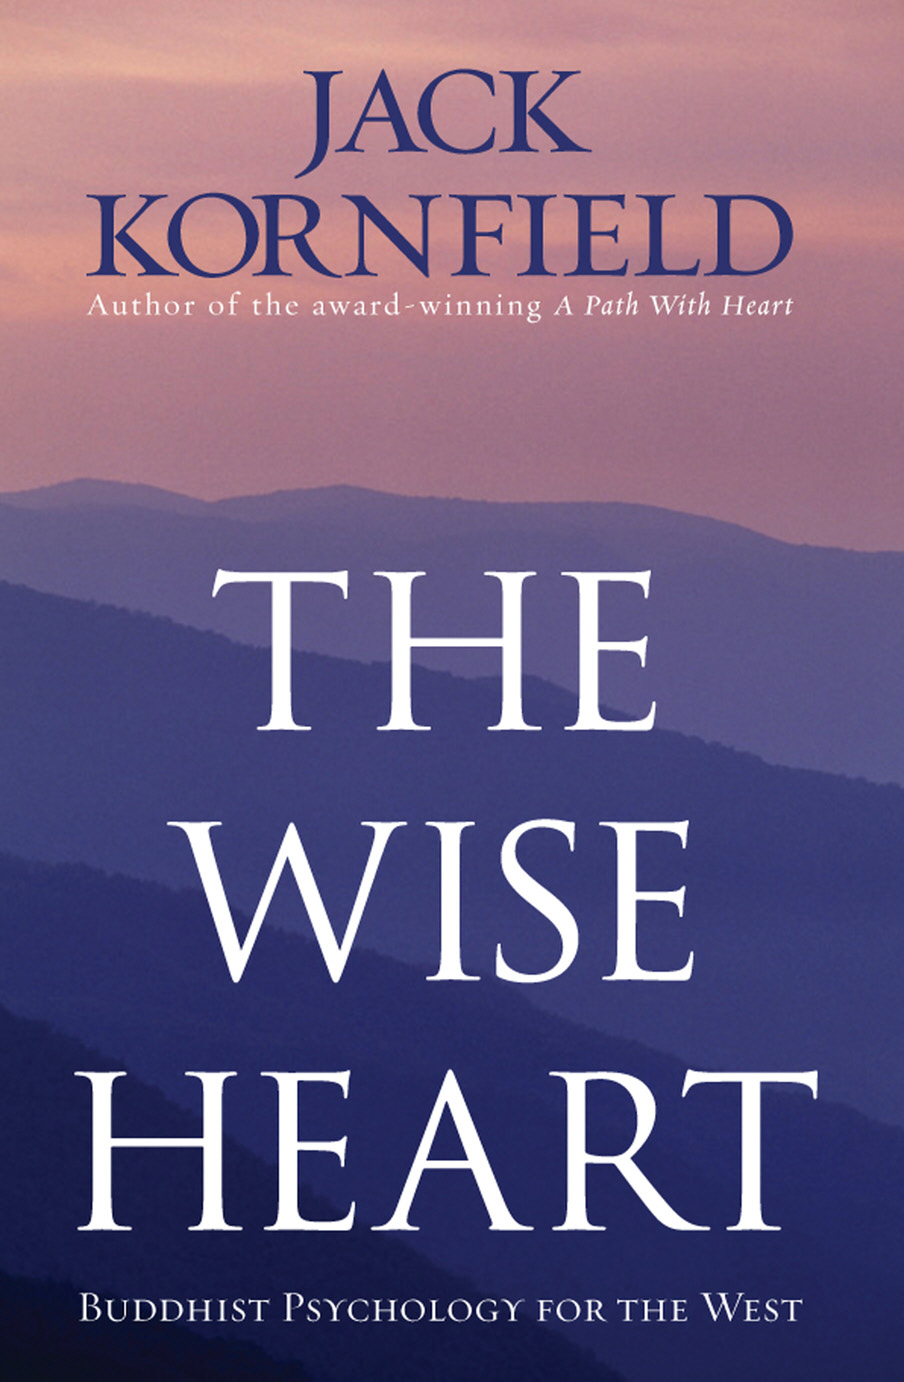 The Wise Heart Buddhist Psychology for the West